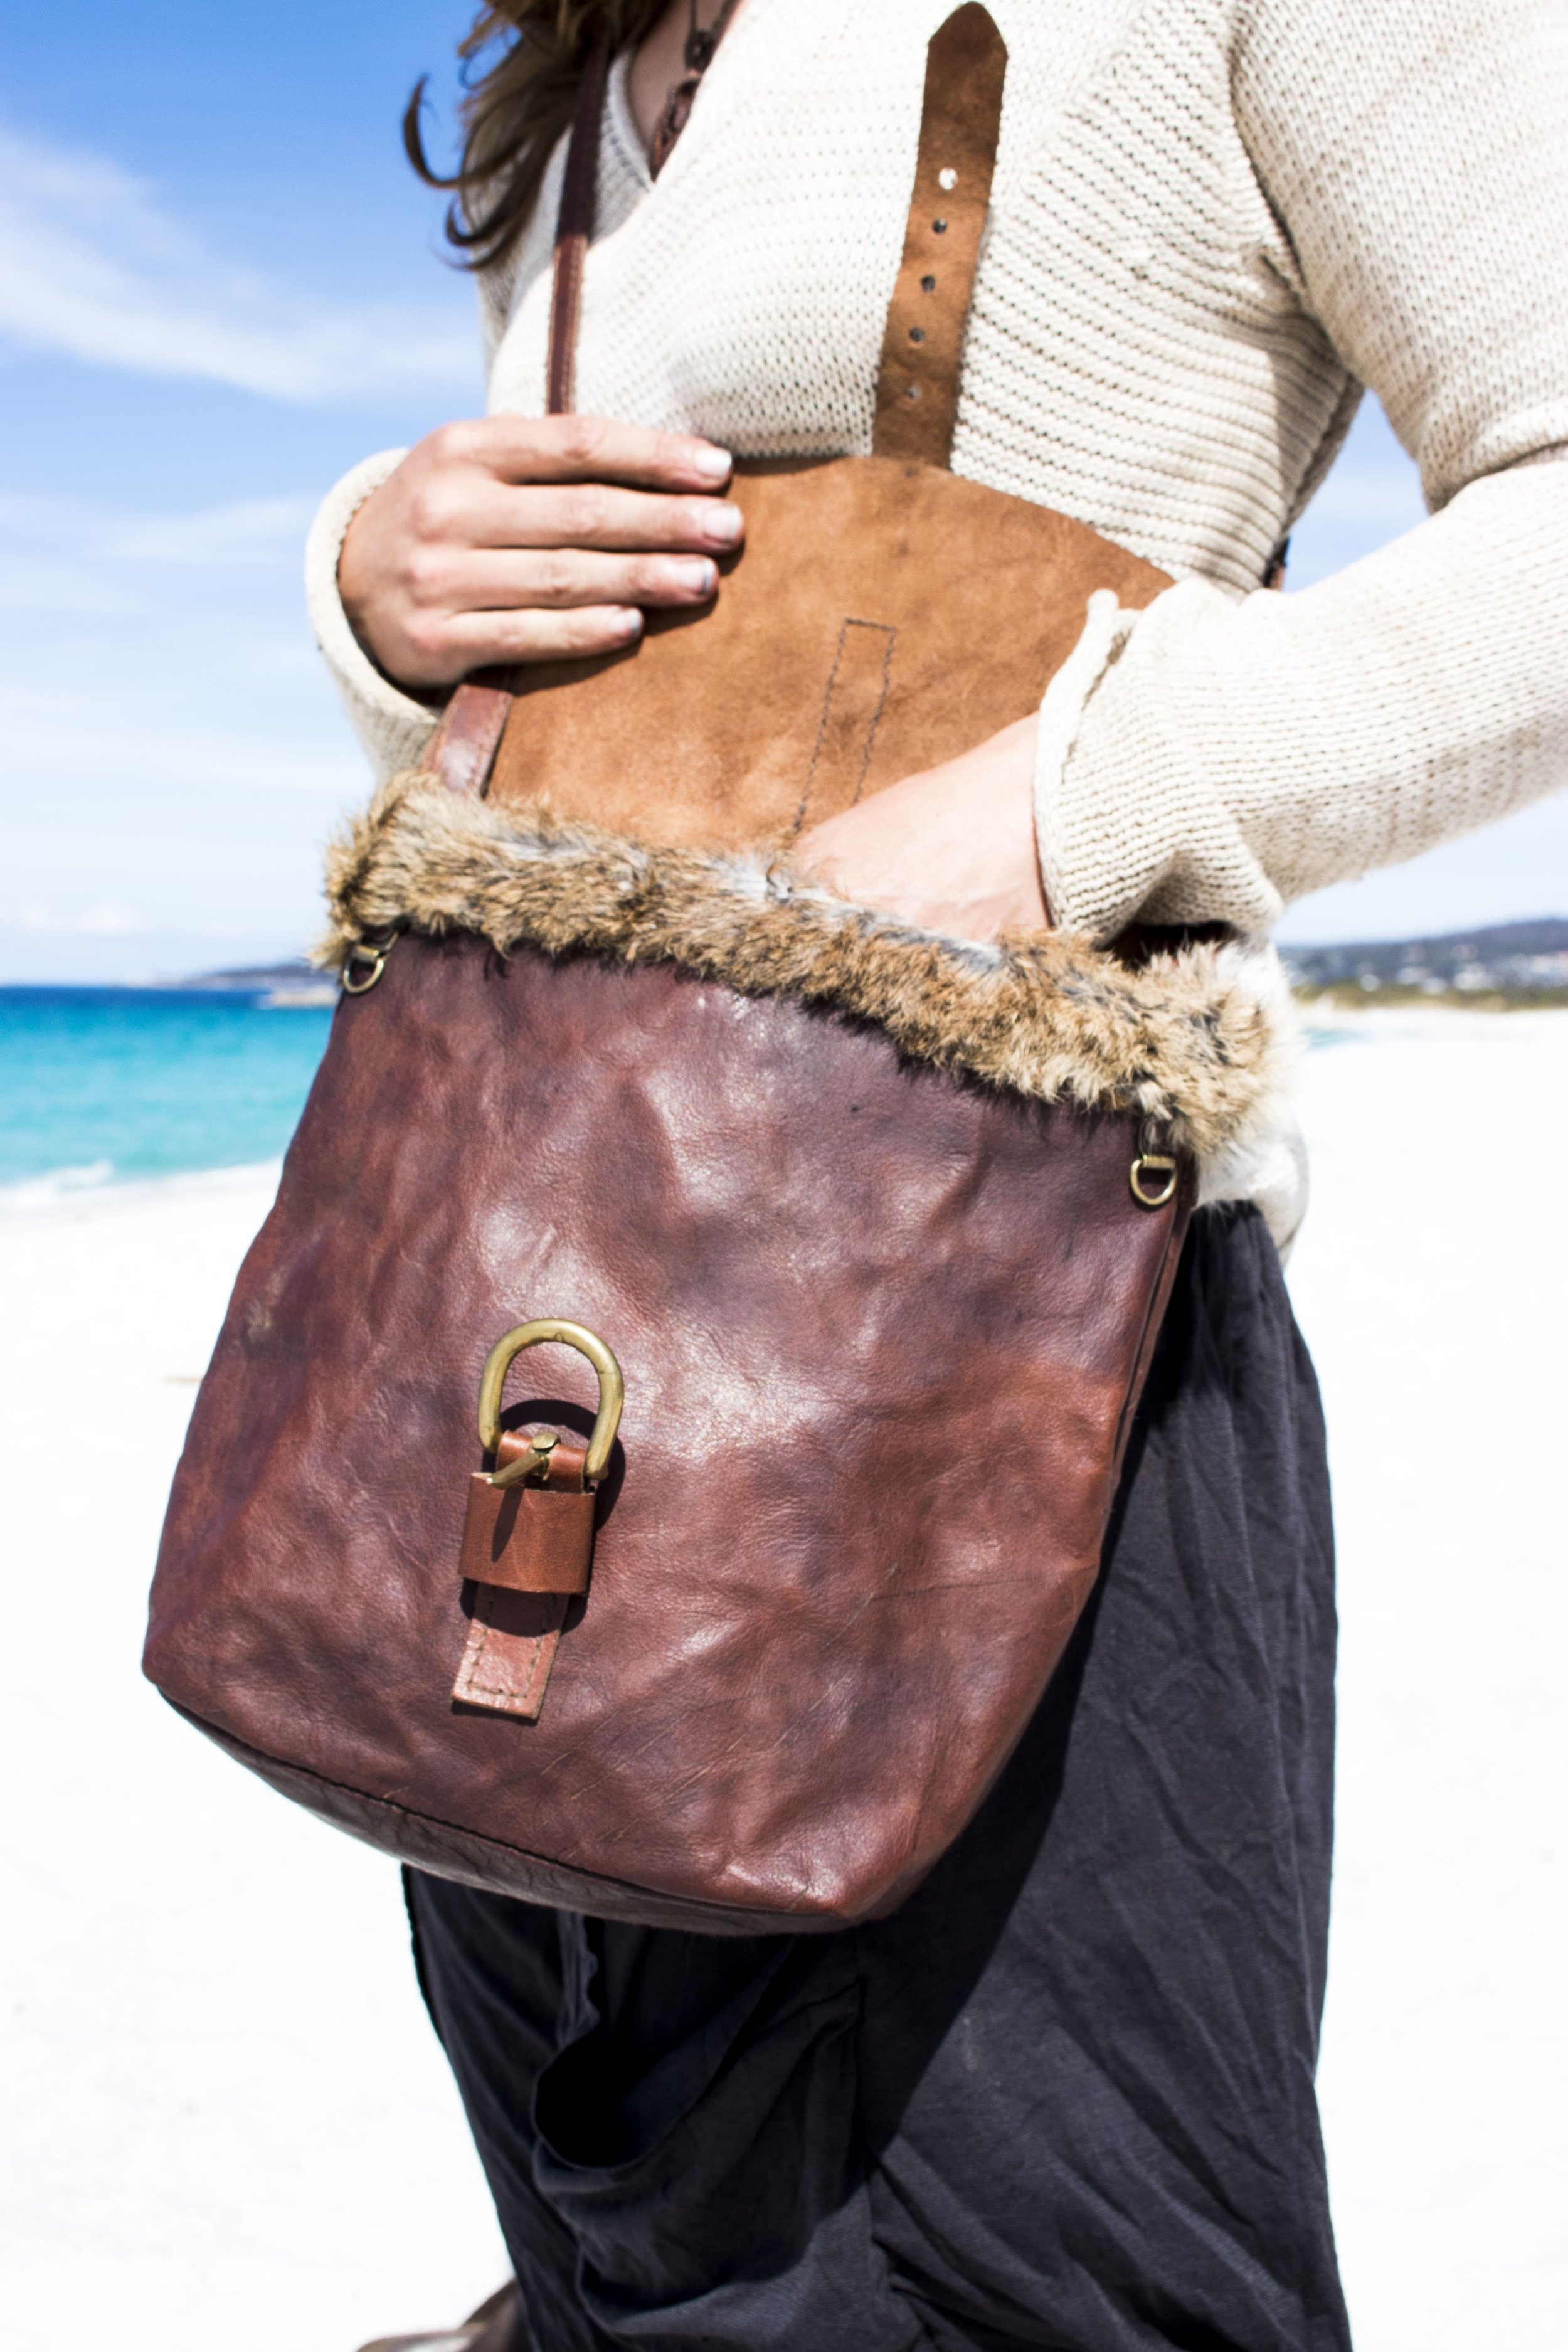 Pictured: Imagine crafting with your own sustainable and ethical leathers using all natural products.